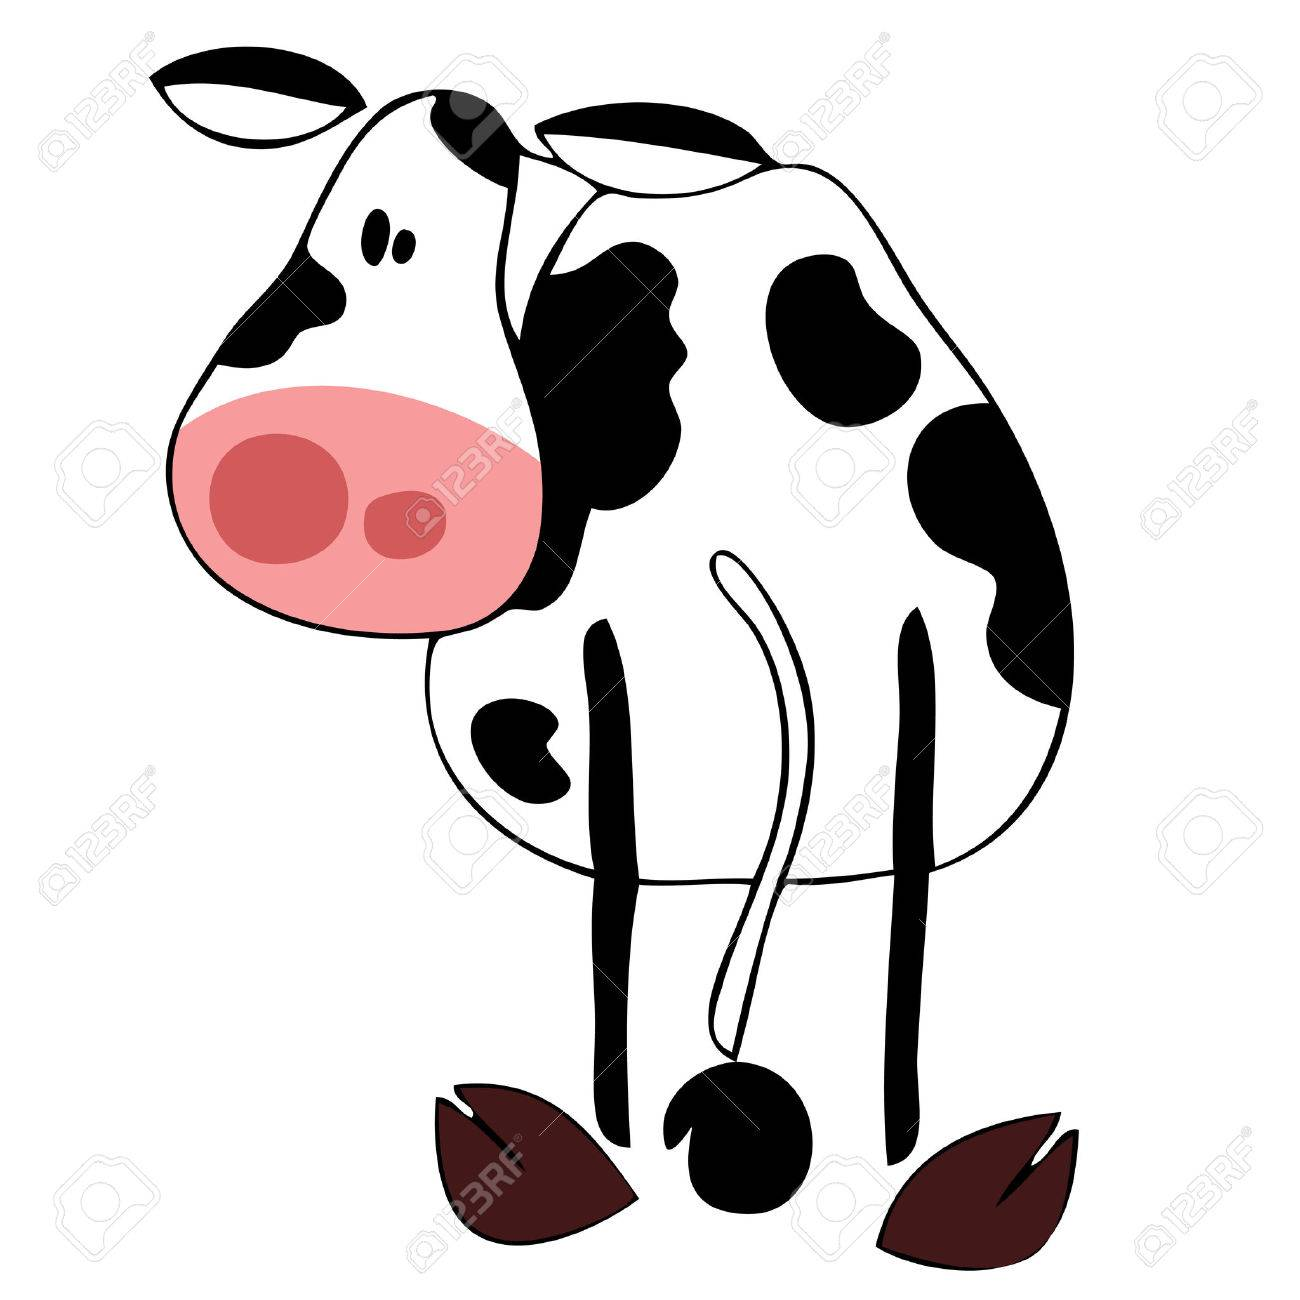 Funny dairy cow. Stock Vector - 8352423